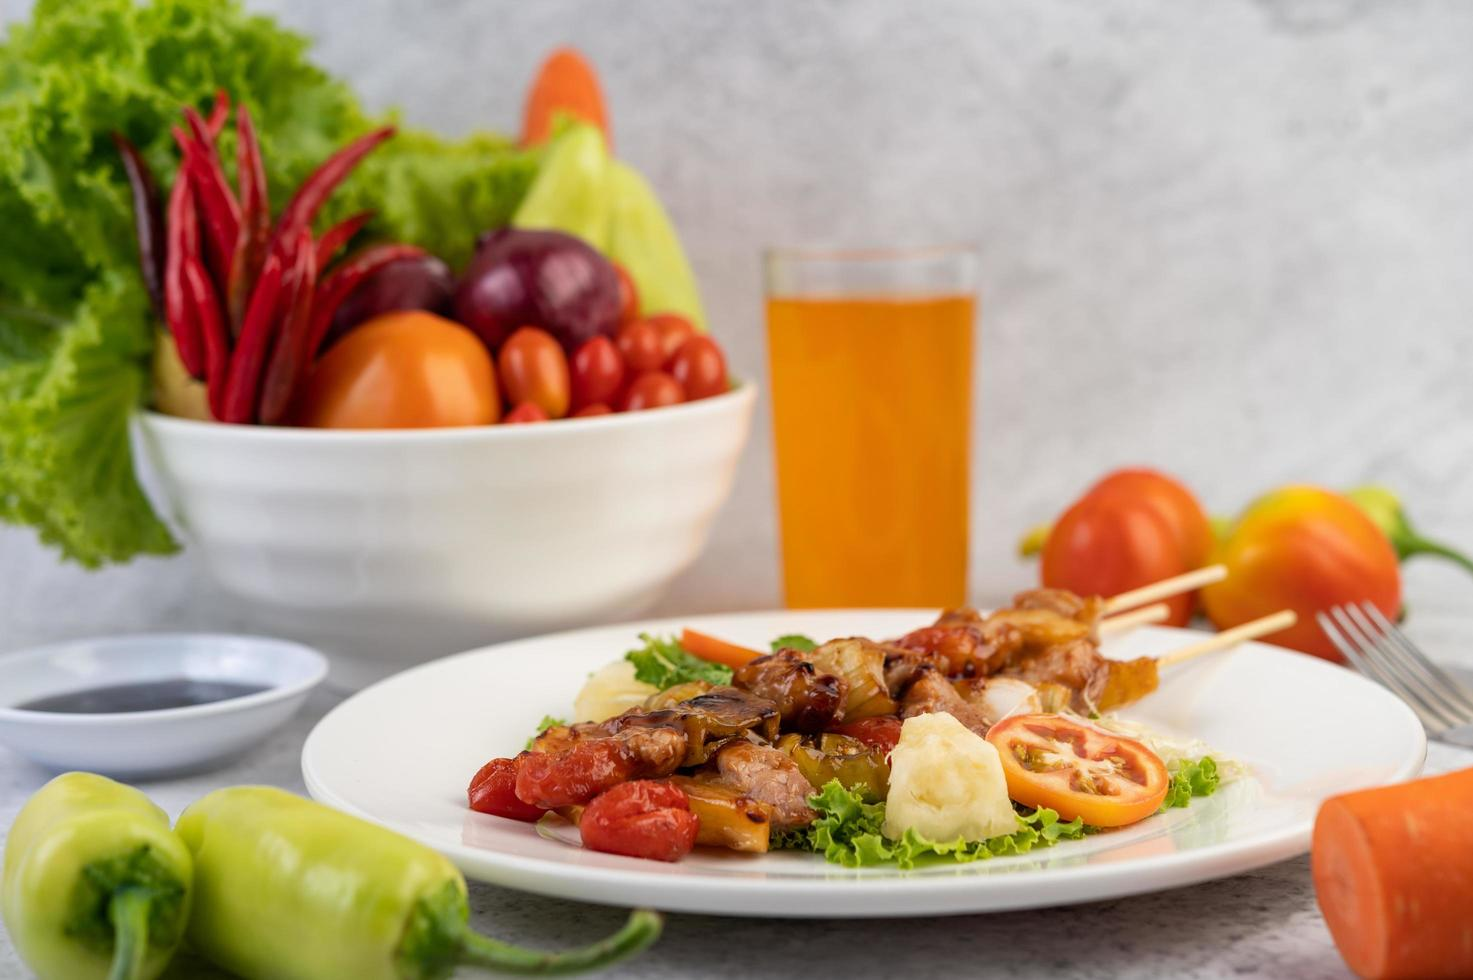 BBQ meat with tomatoes and bell peppers photo